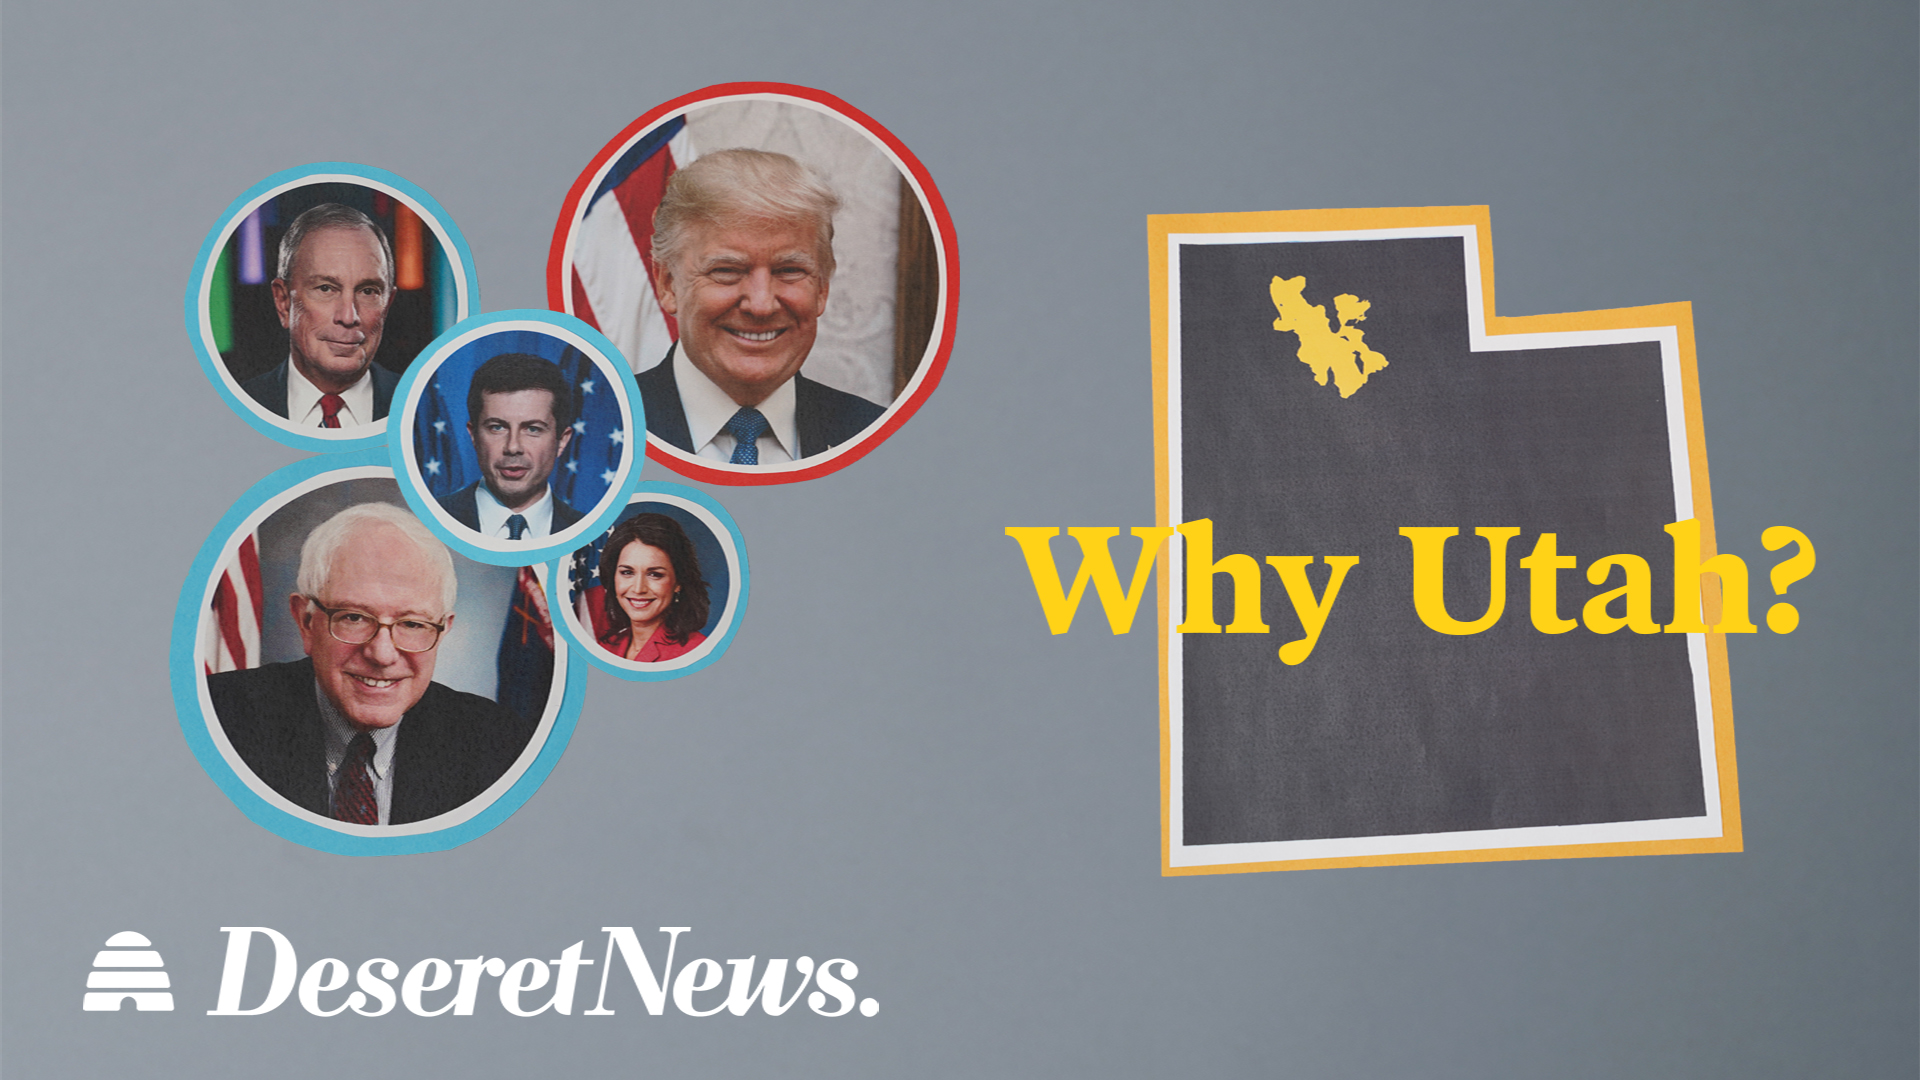 Faces of Democratic candidates and Donald Trump with the shape of the state of Utah and text asking Why Utah?